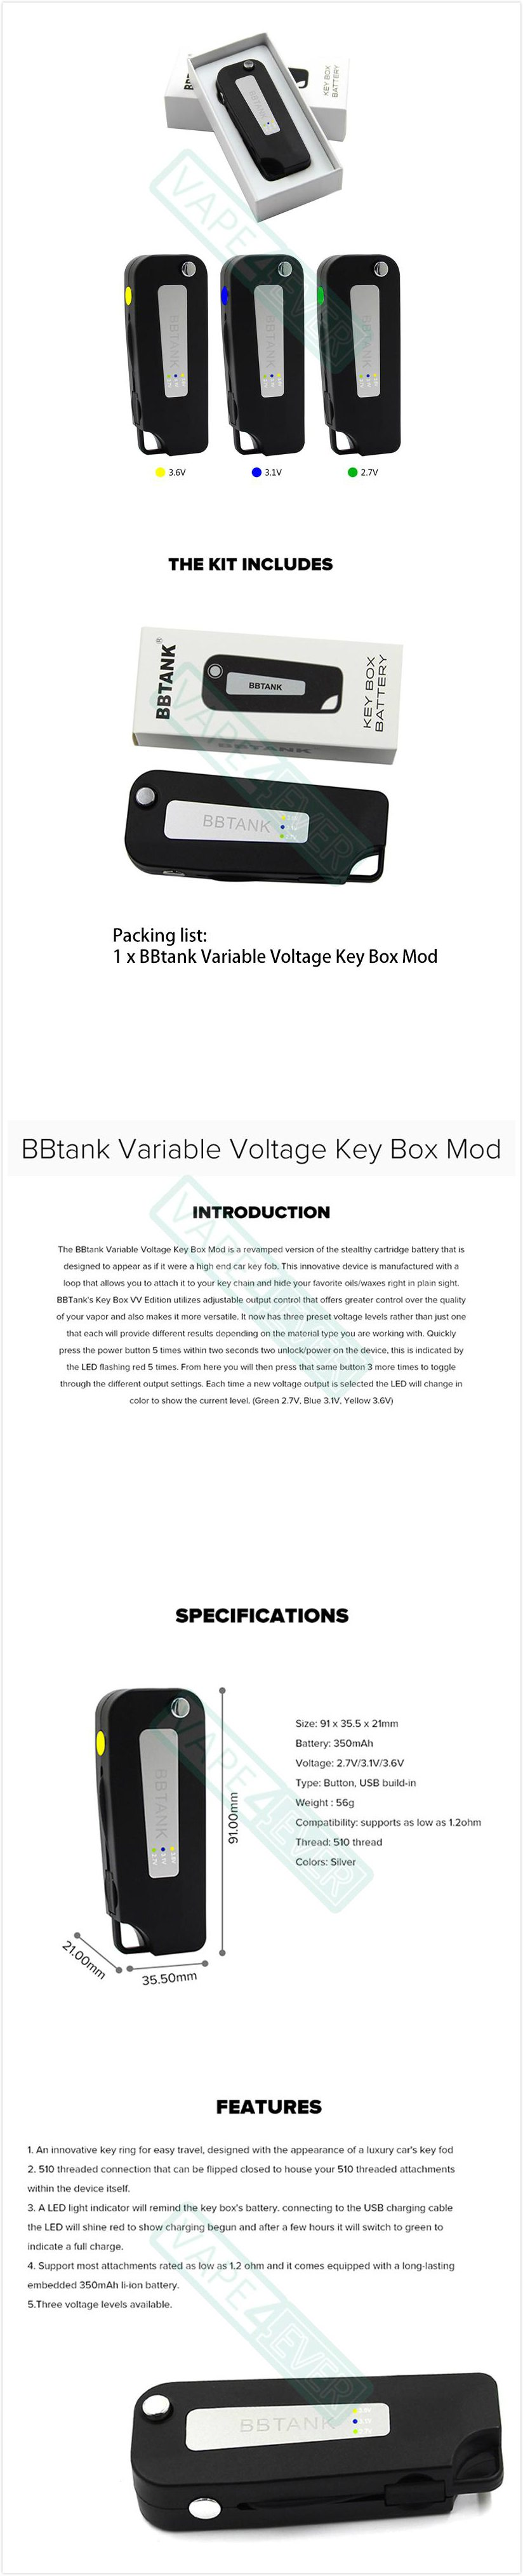 BBTANK Key Box Mod Variable Voltage Version 350mAh Li-ion Battery Instruction